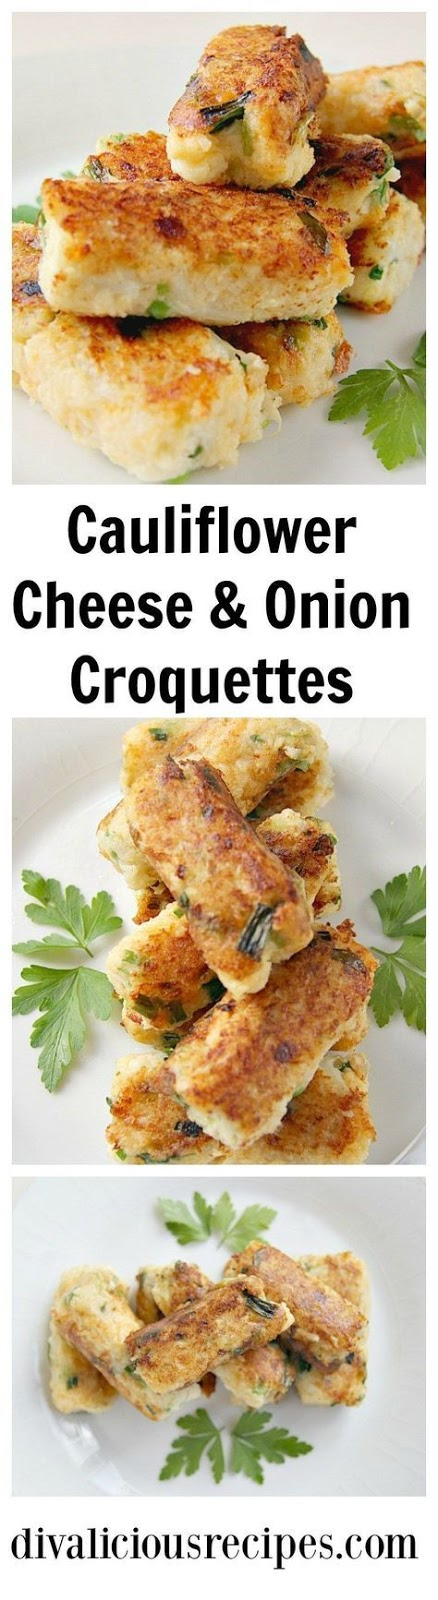 Low Carb Cauliflower Cheese & Onion Croquette